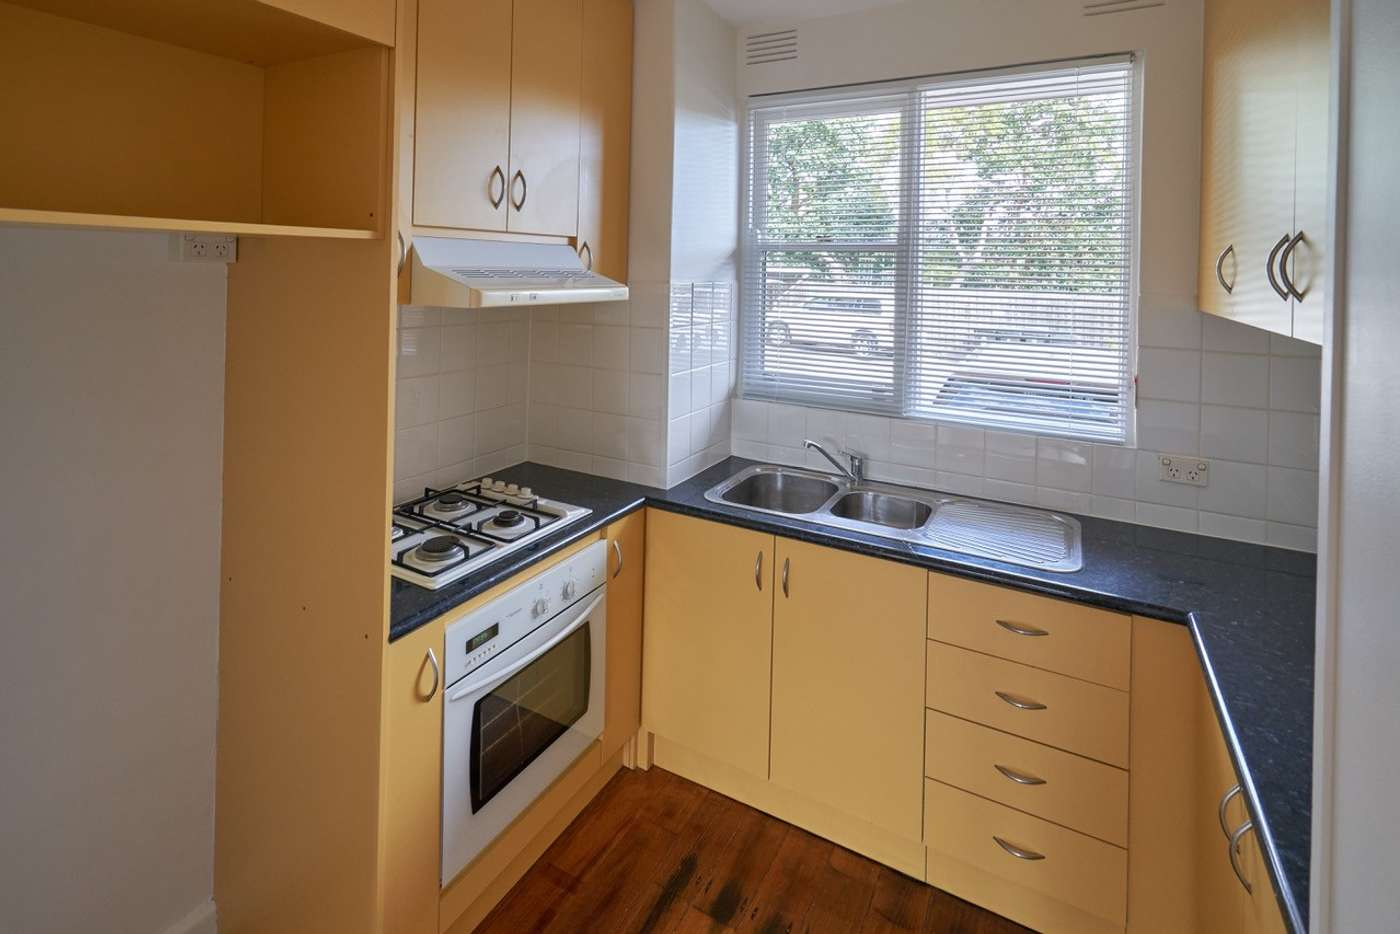 Sixth view of Homely unit listing, 7/80 Darling Road, Malvern East VIC 3145